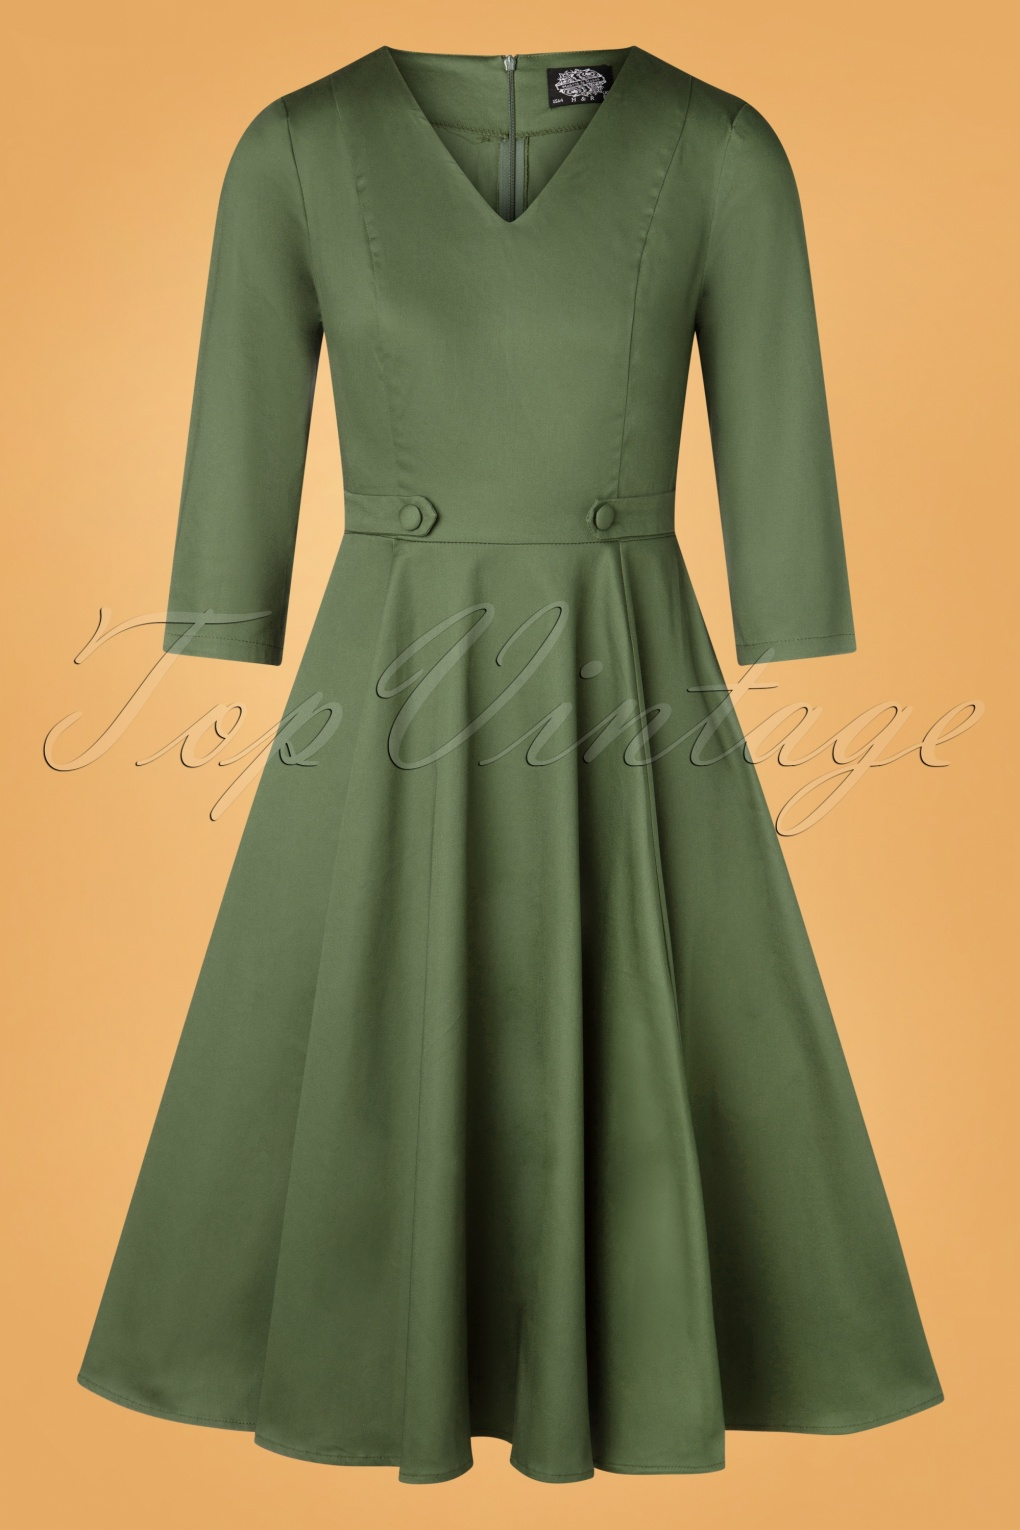 Pin Up Dresses | Pinup Clothing & Fashion 50s Sabby Swing Dress in Olive Green £51.01 AT vintagedancer.com